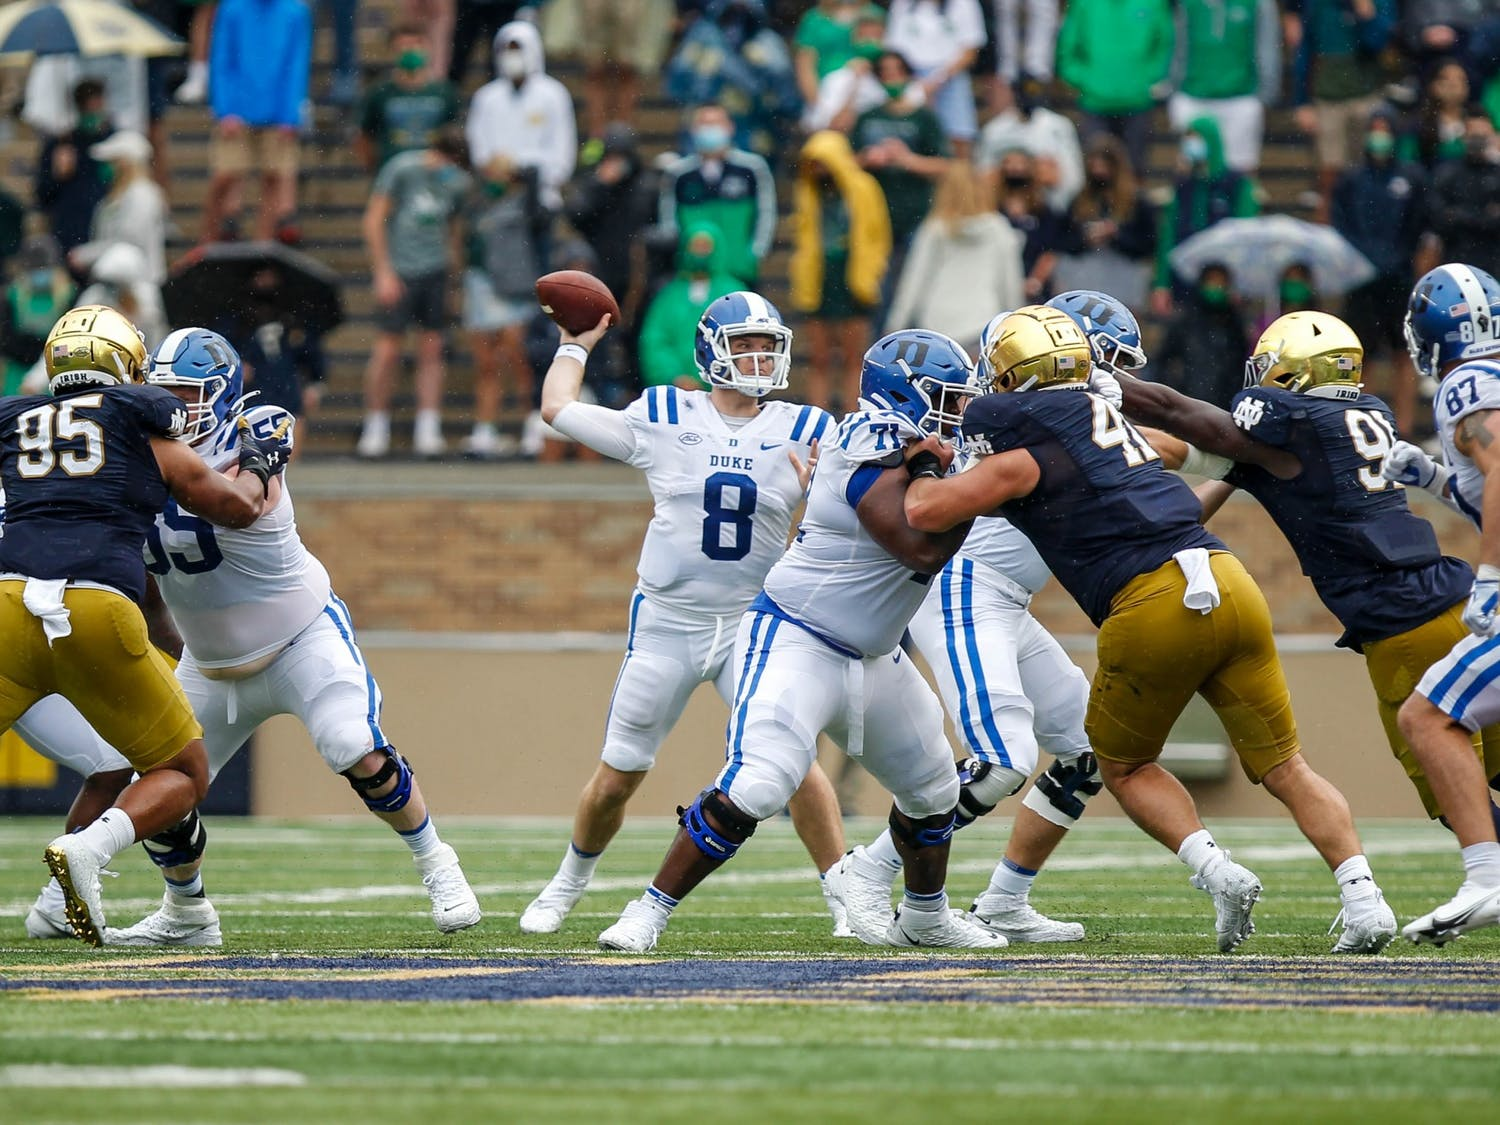 Transfer quarterback Chase Brice has quickly become the face of Duke's offense.